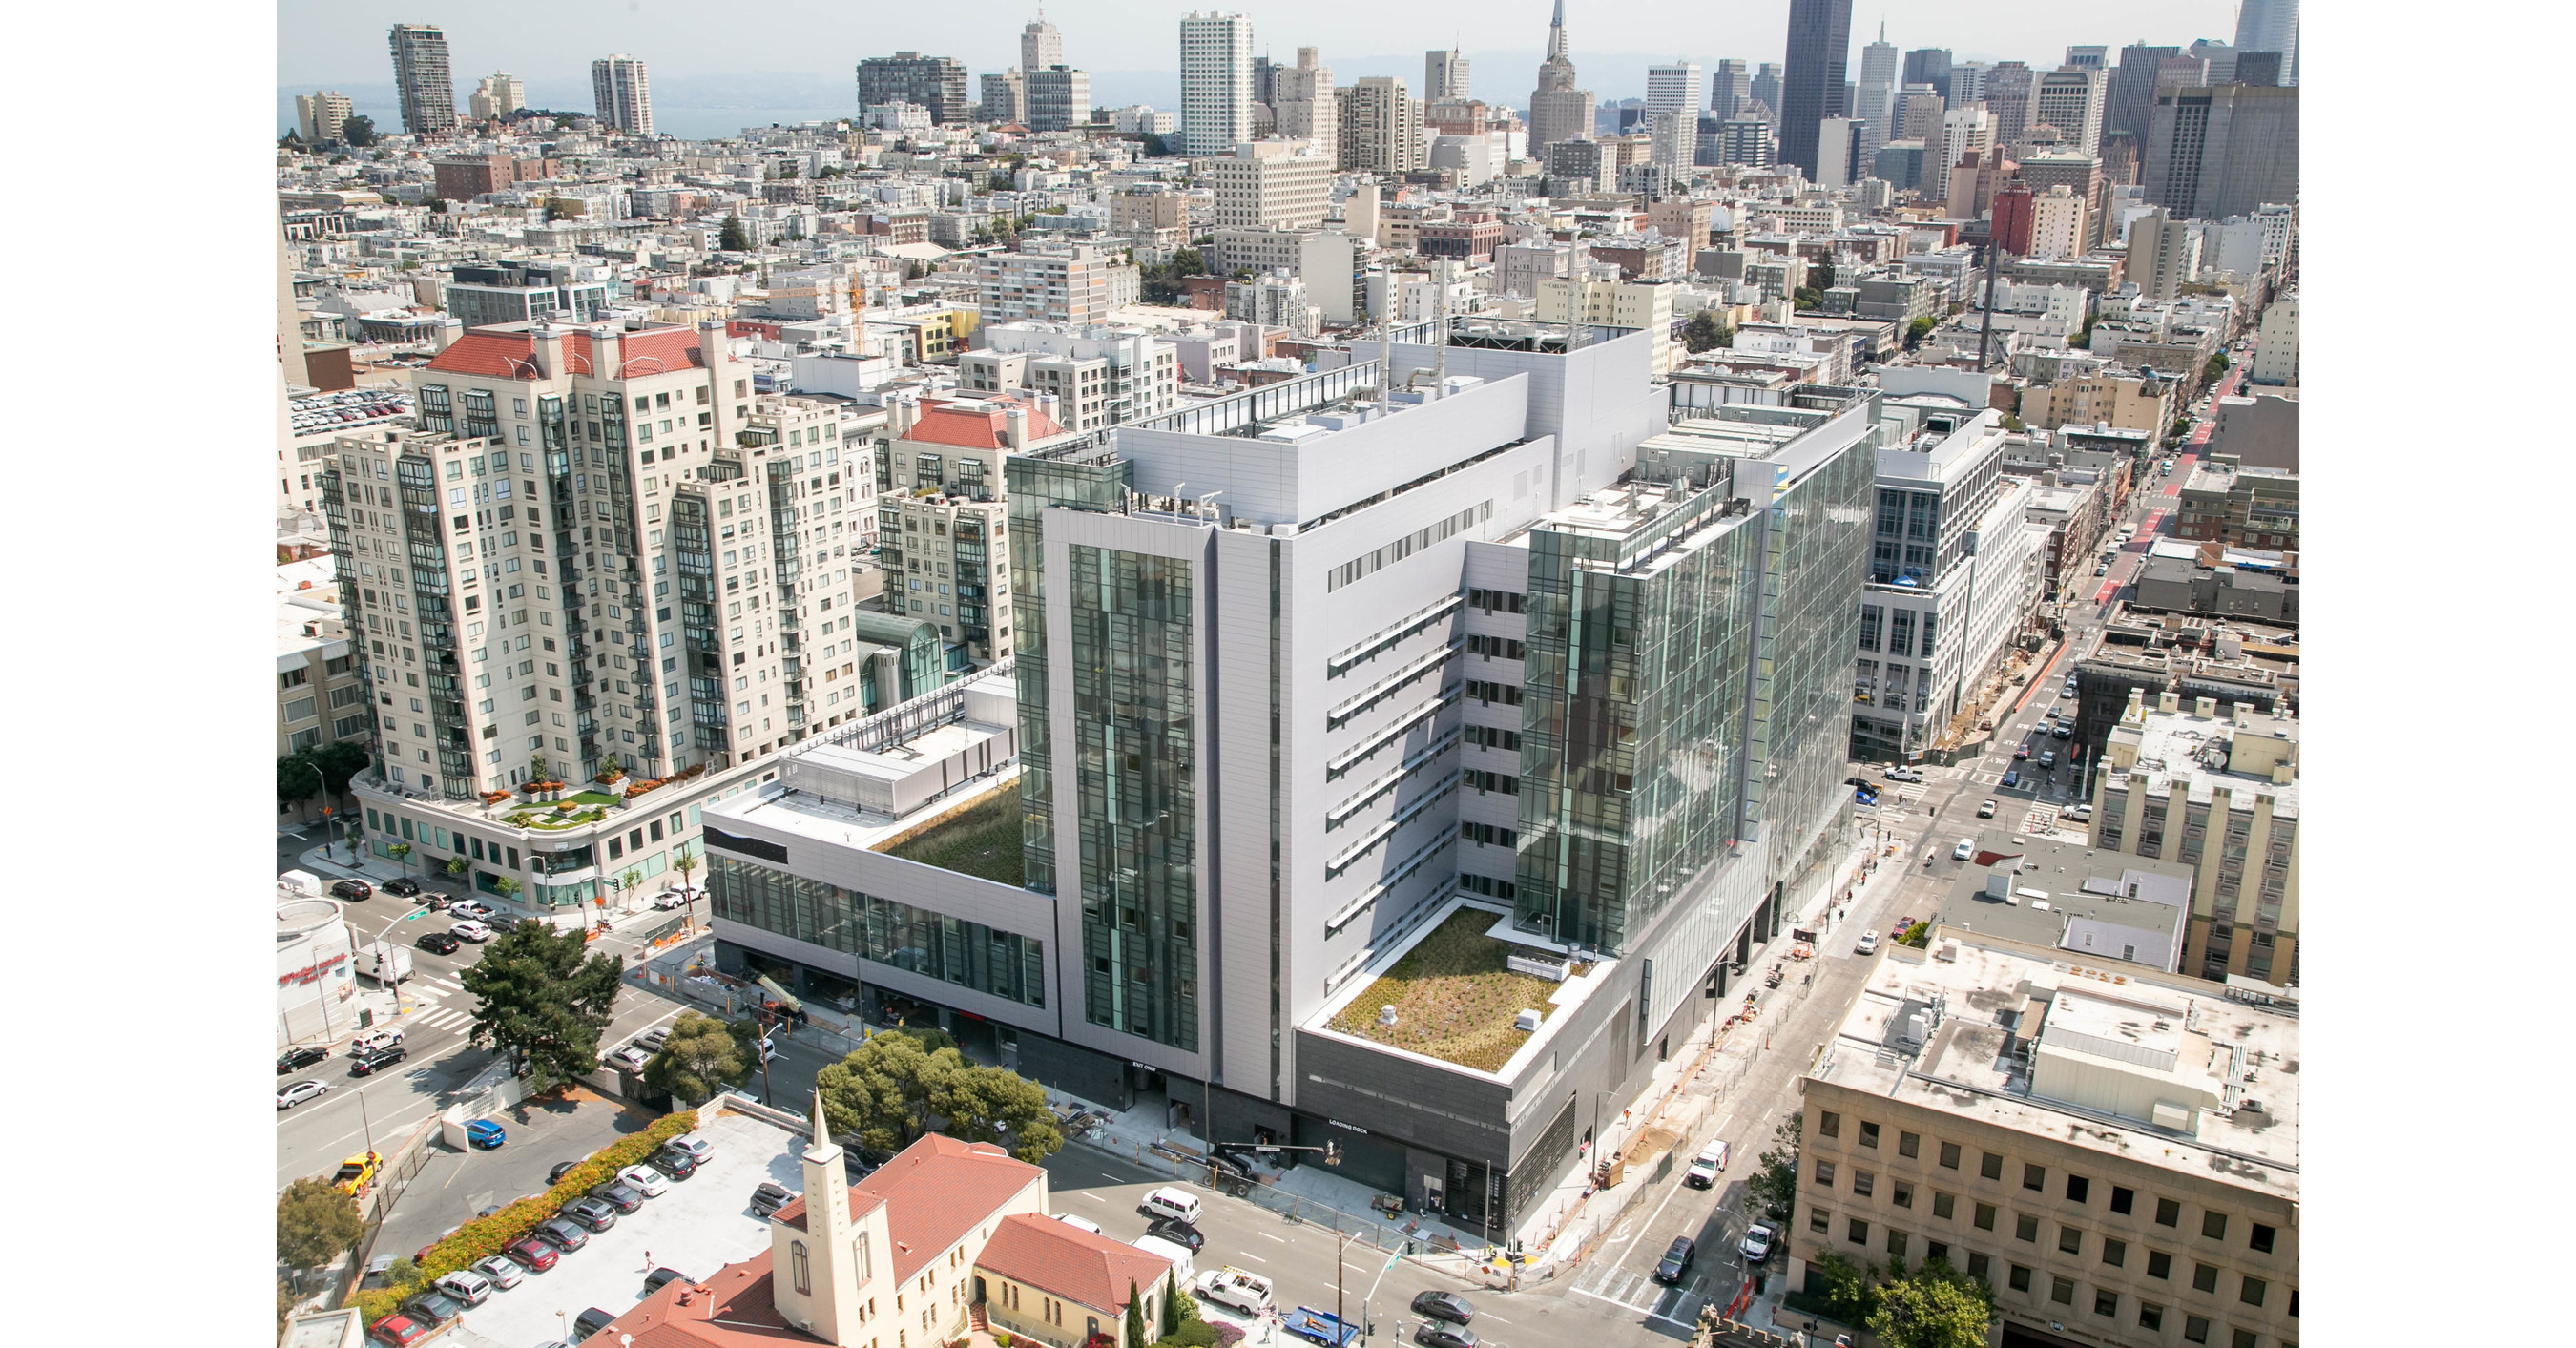 New Sutter Cpmc Van Ness Campus Hospital To Open In The Heart Of San Francisco